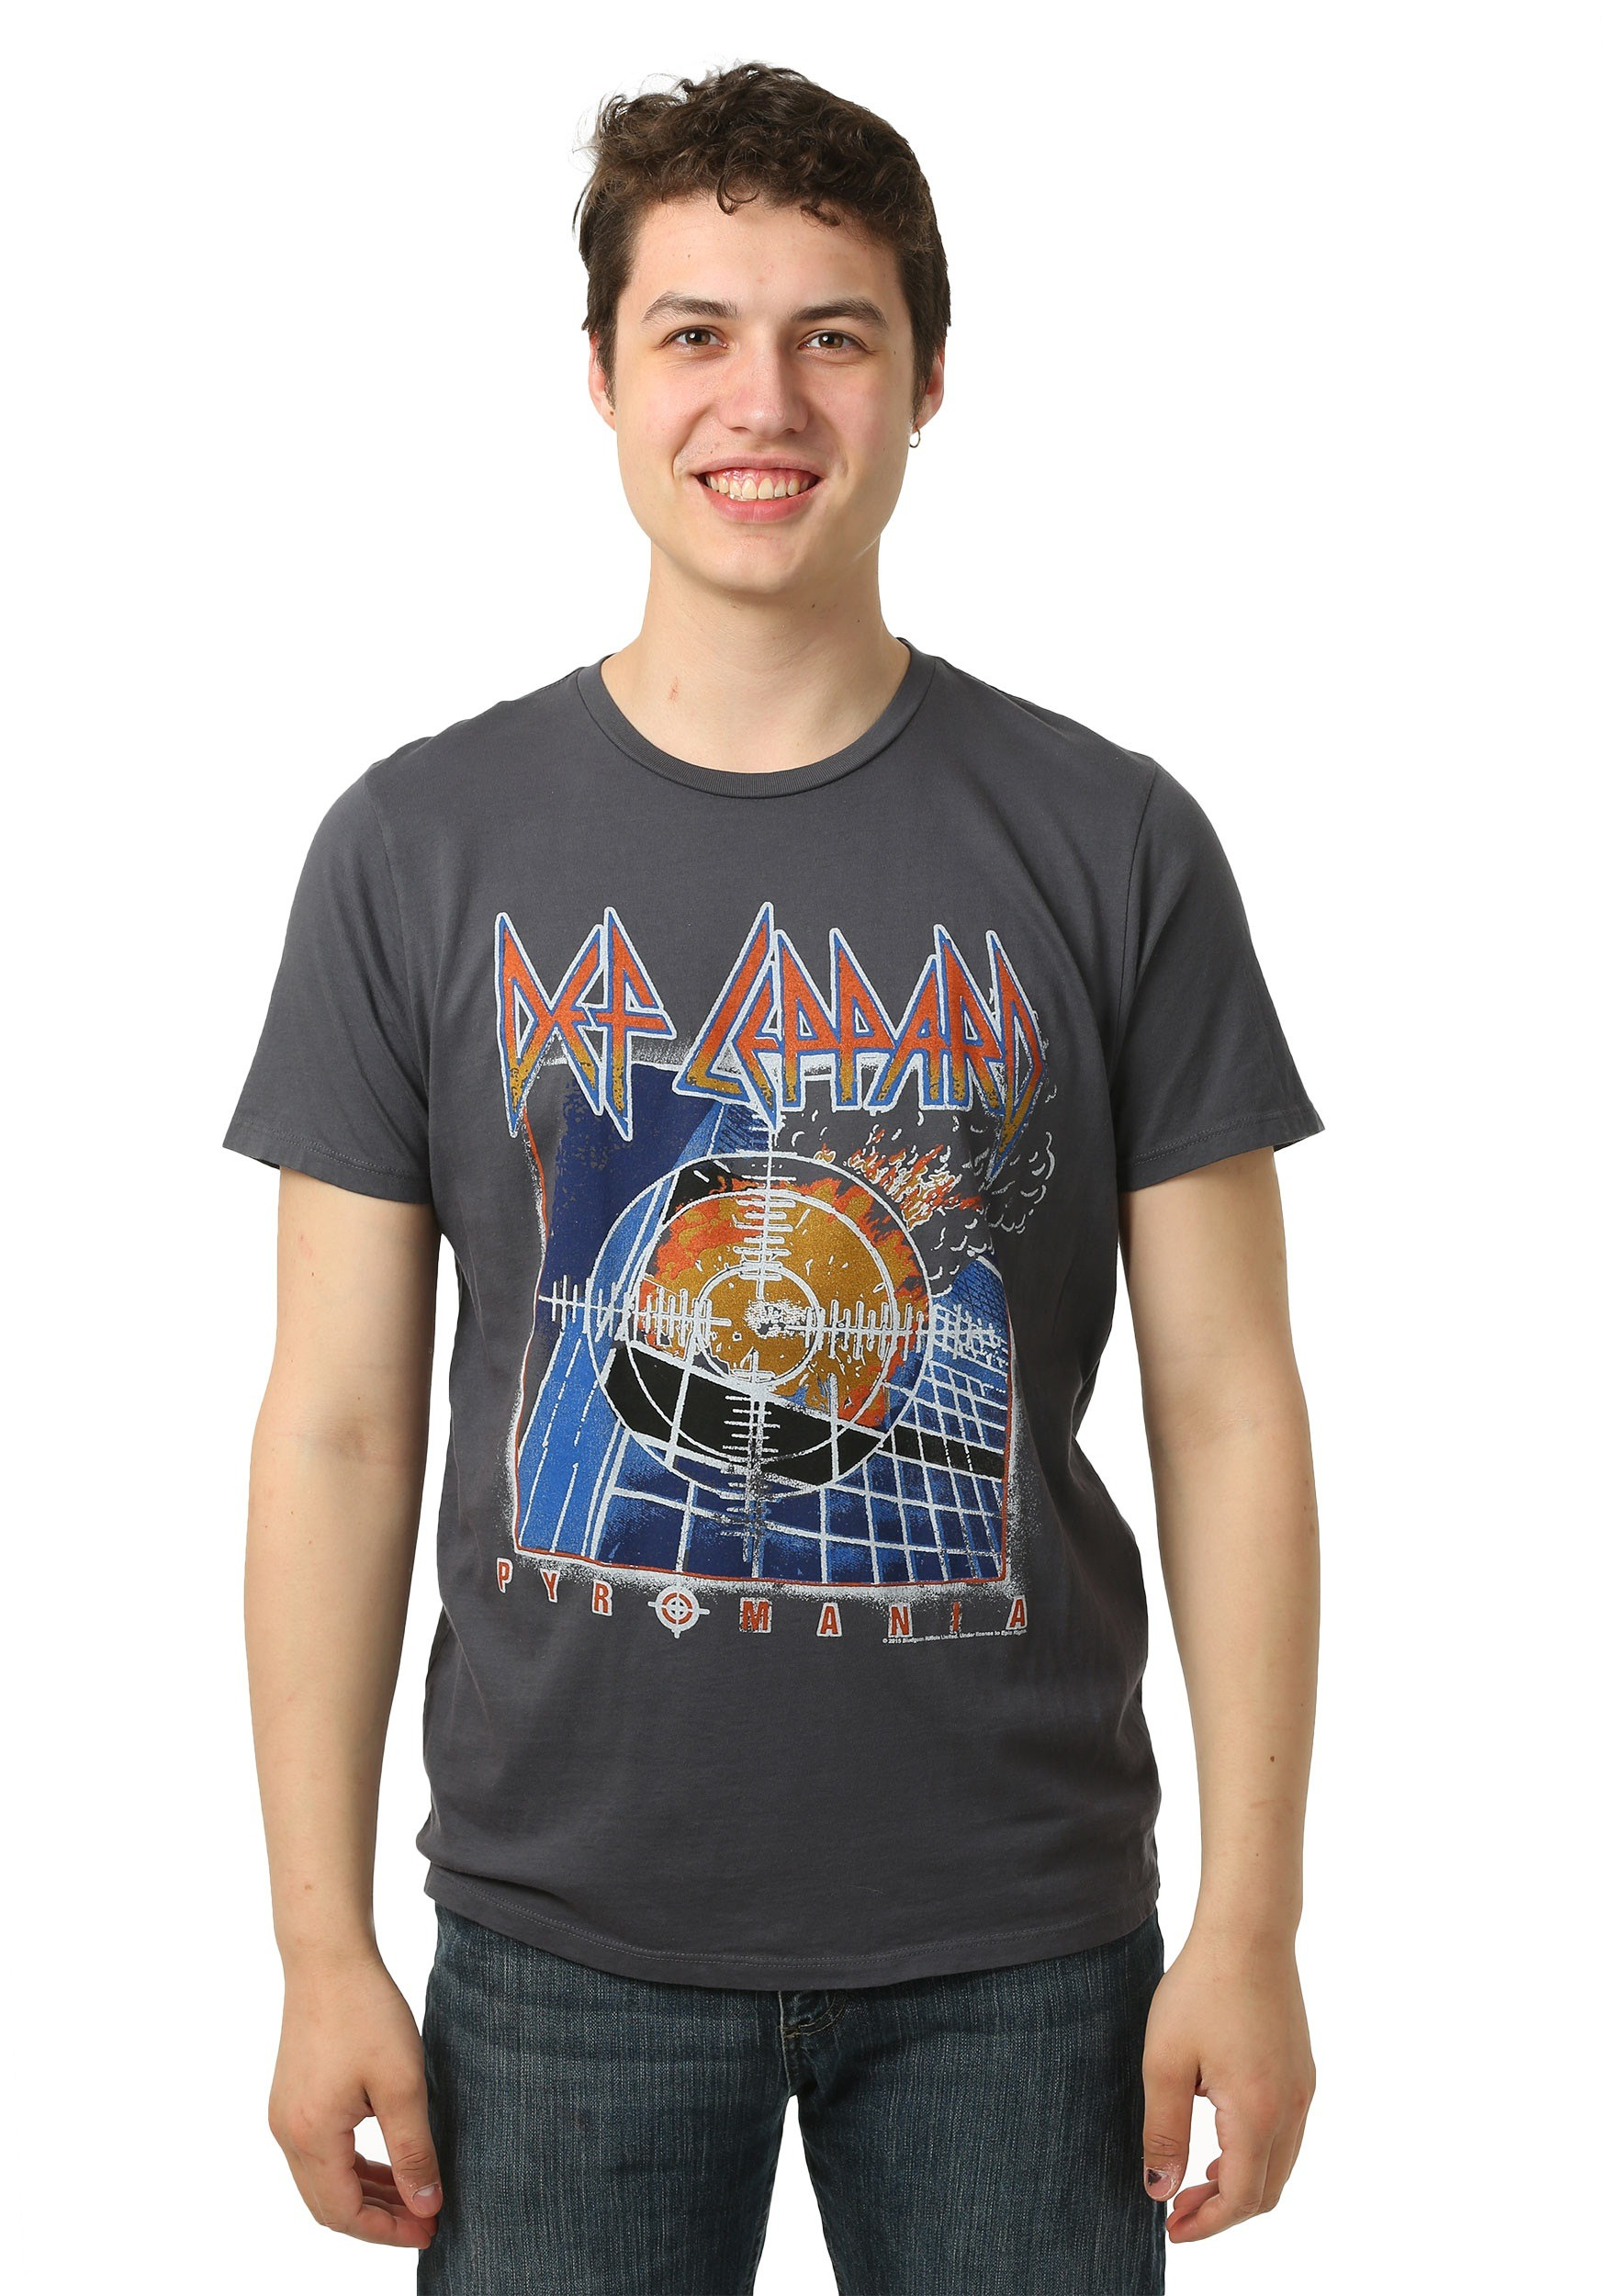 Def leppard pyromania front and back men 39 s t shirt for Band t shirt designs for sale